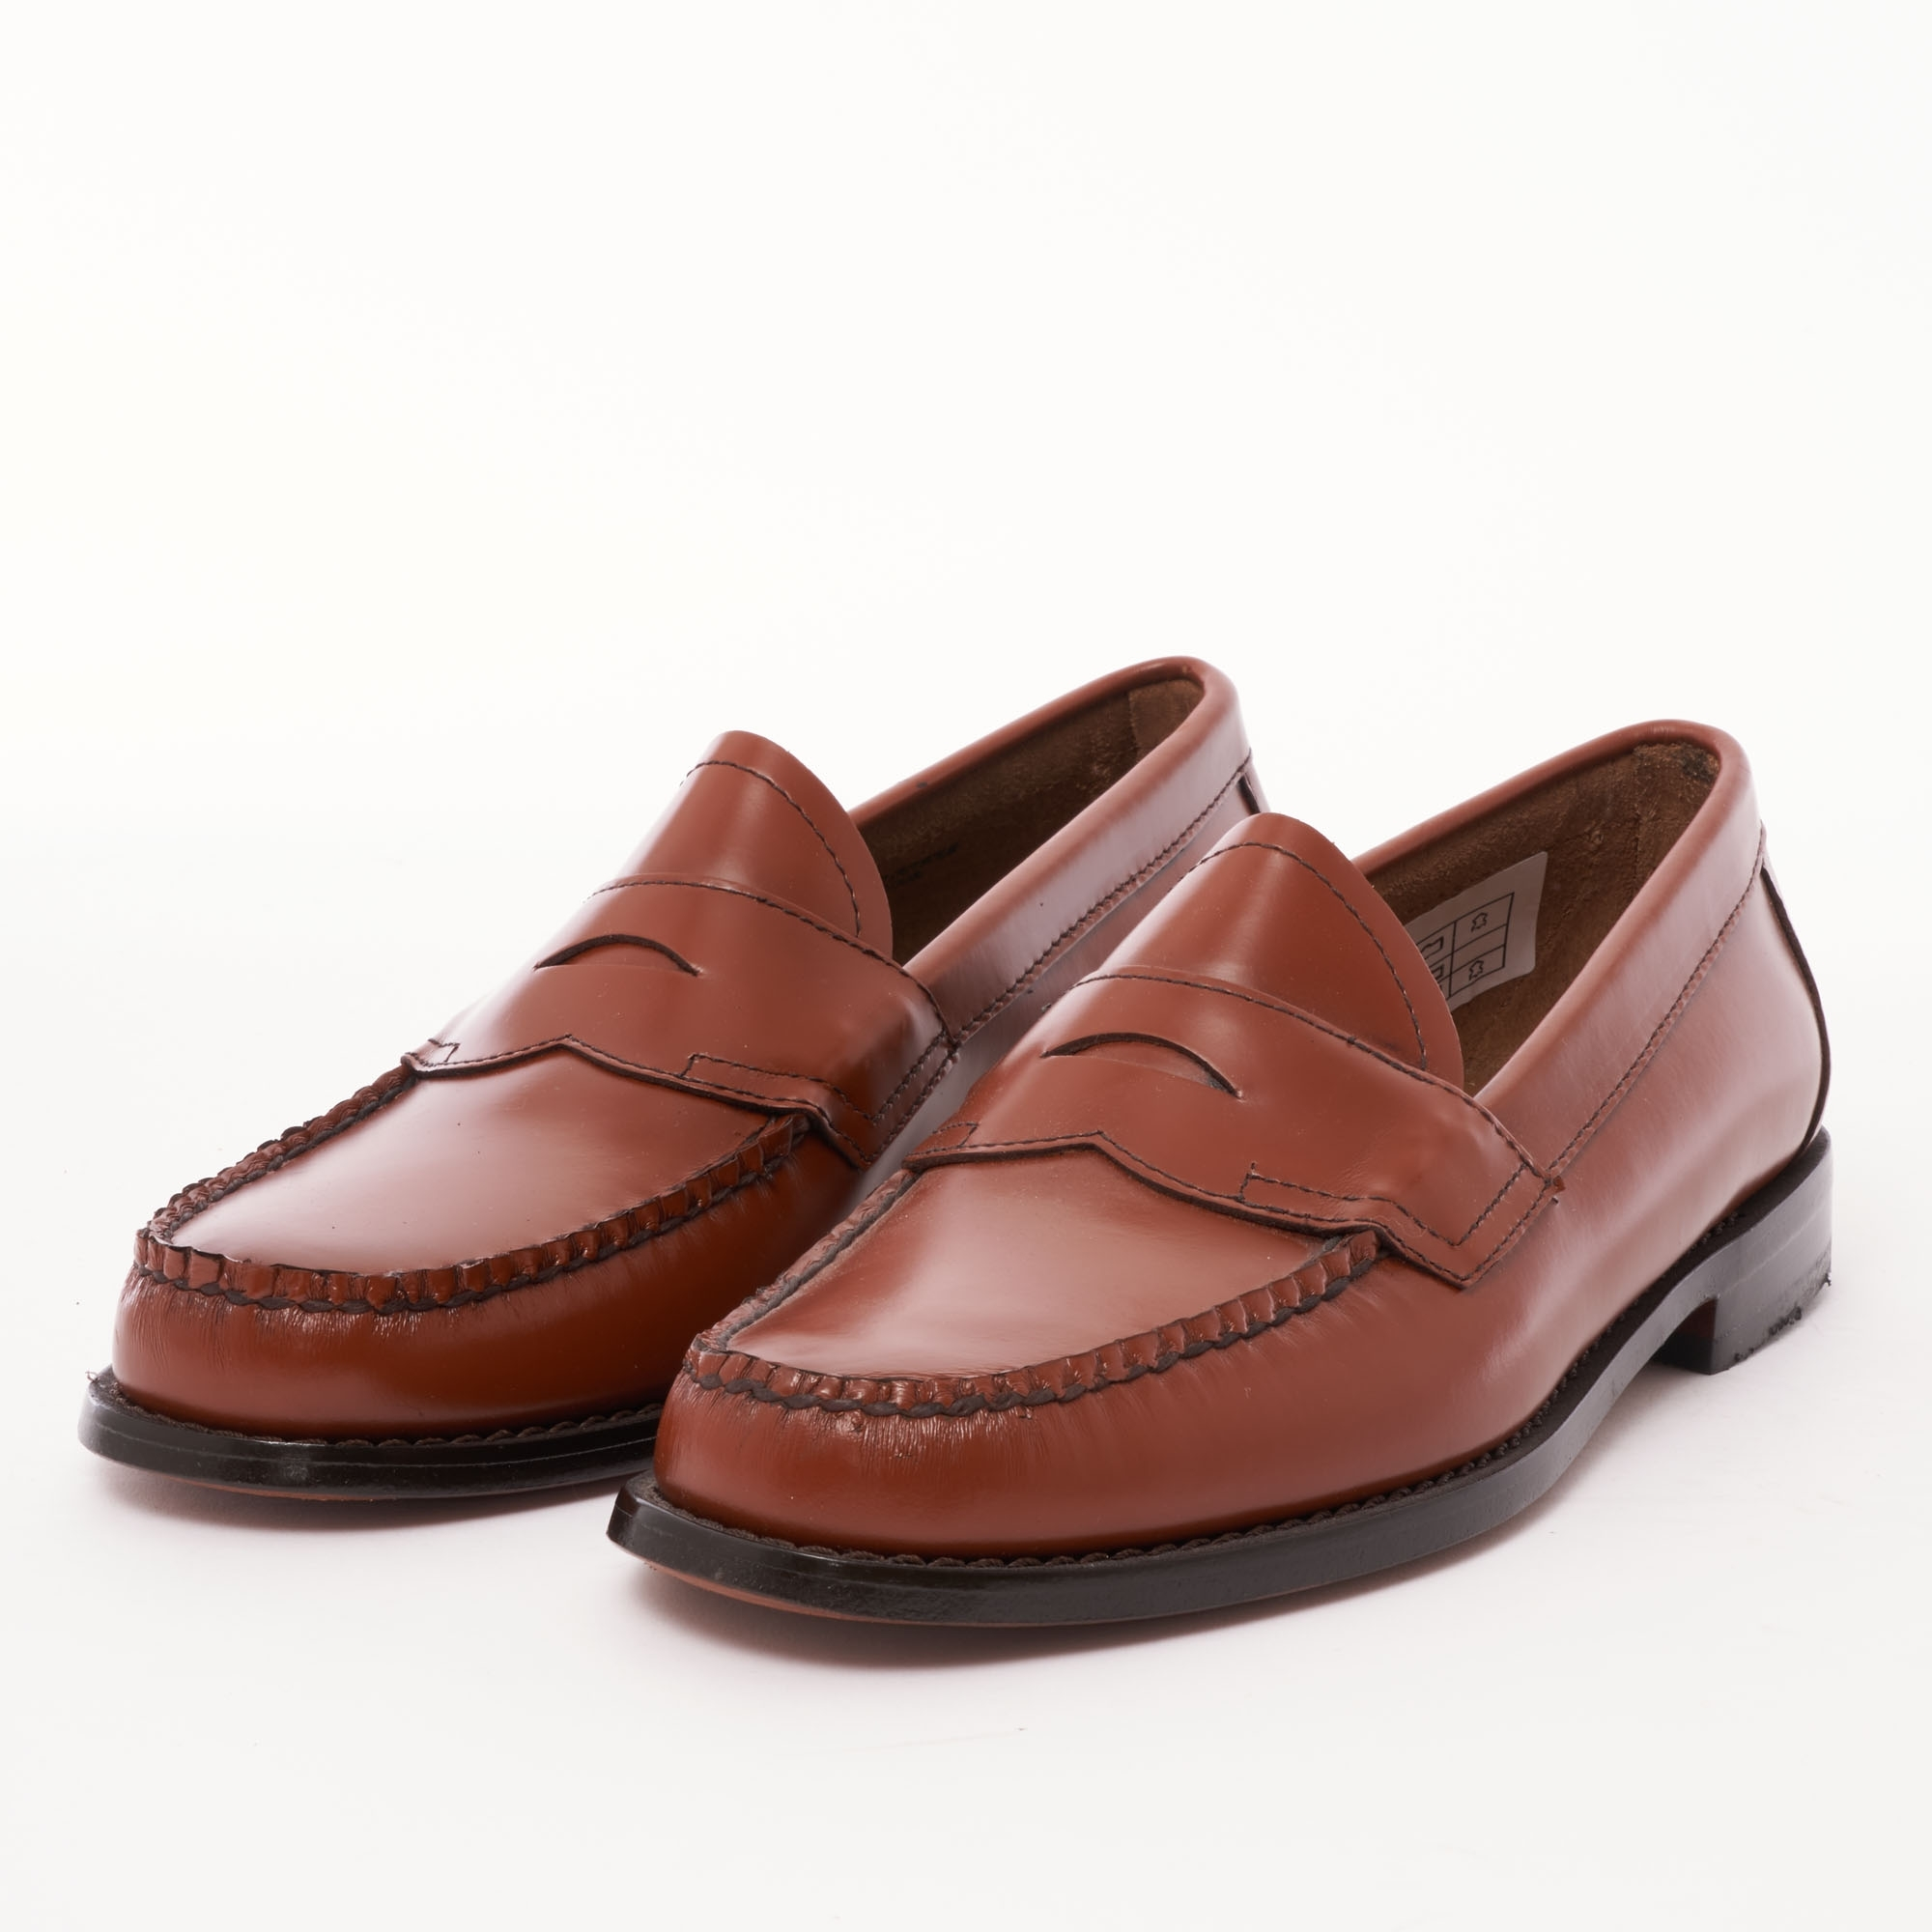 d0abfa3a897 Bass Weejuns Logan Polished Leather Loafer